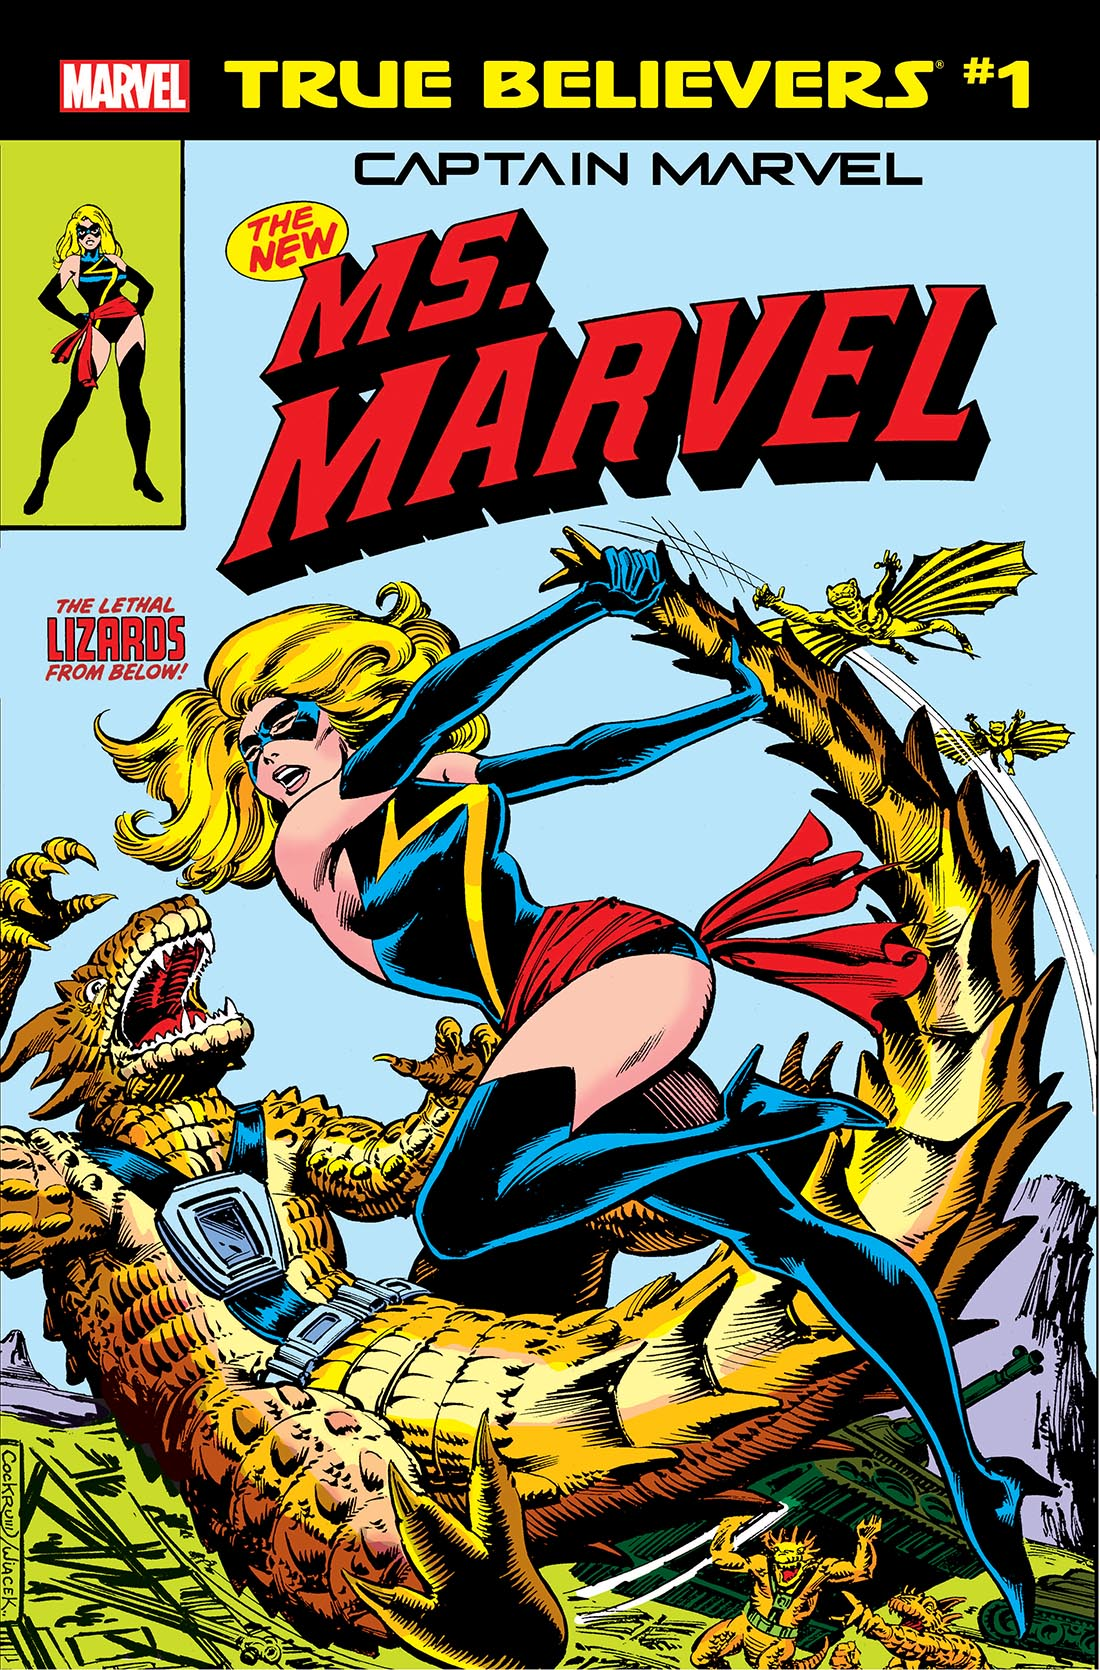 True Believers: Captain Marvel - The New Ms. Marvel (2019) #1